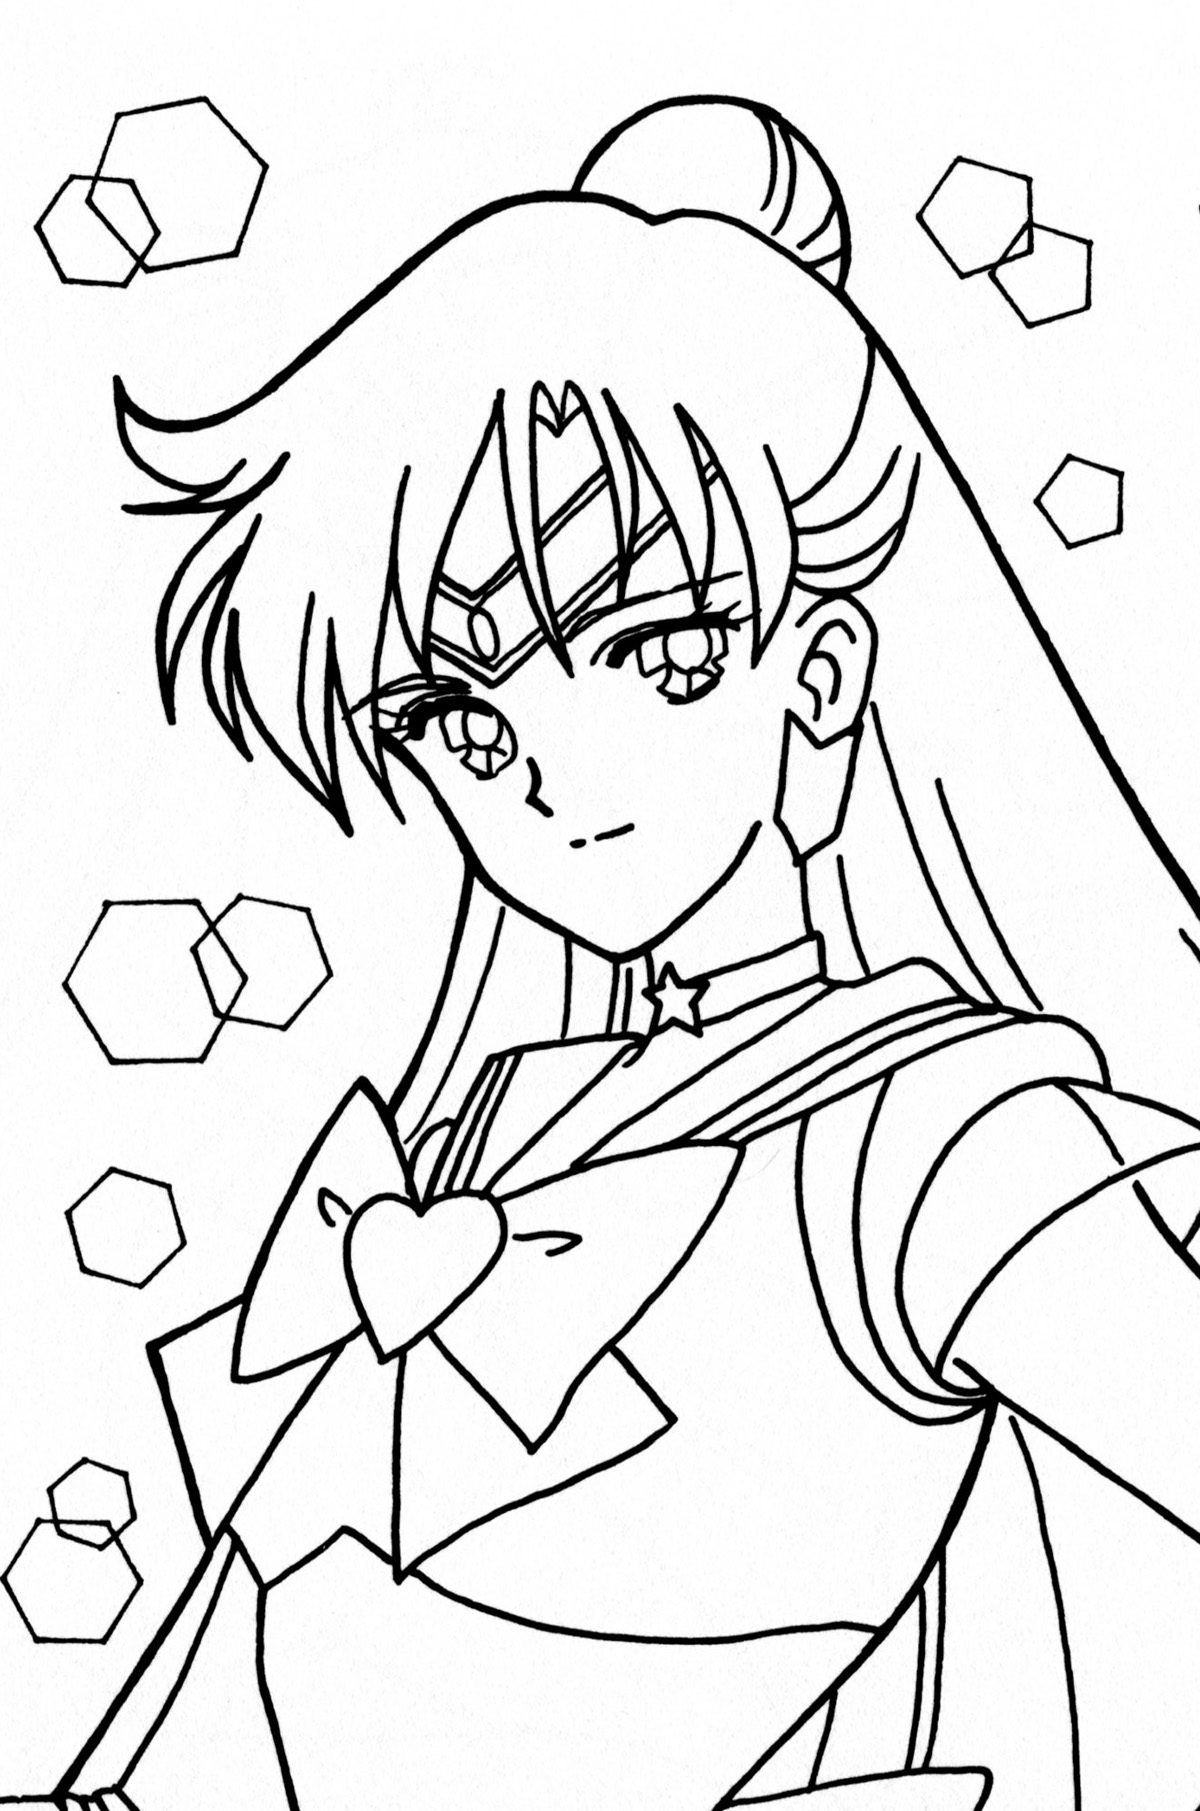 Pluto Coloring Pages - Tsuki Matsuri the Sailormoon Coloring Book Archive